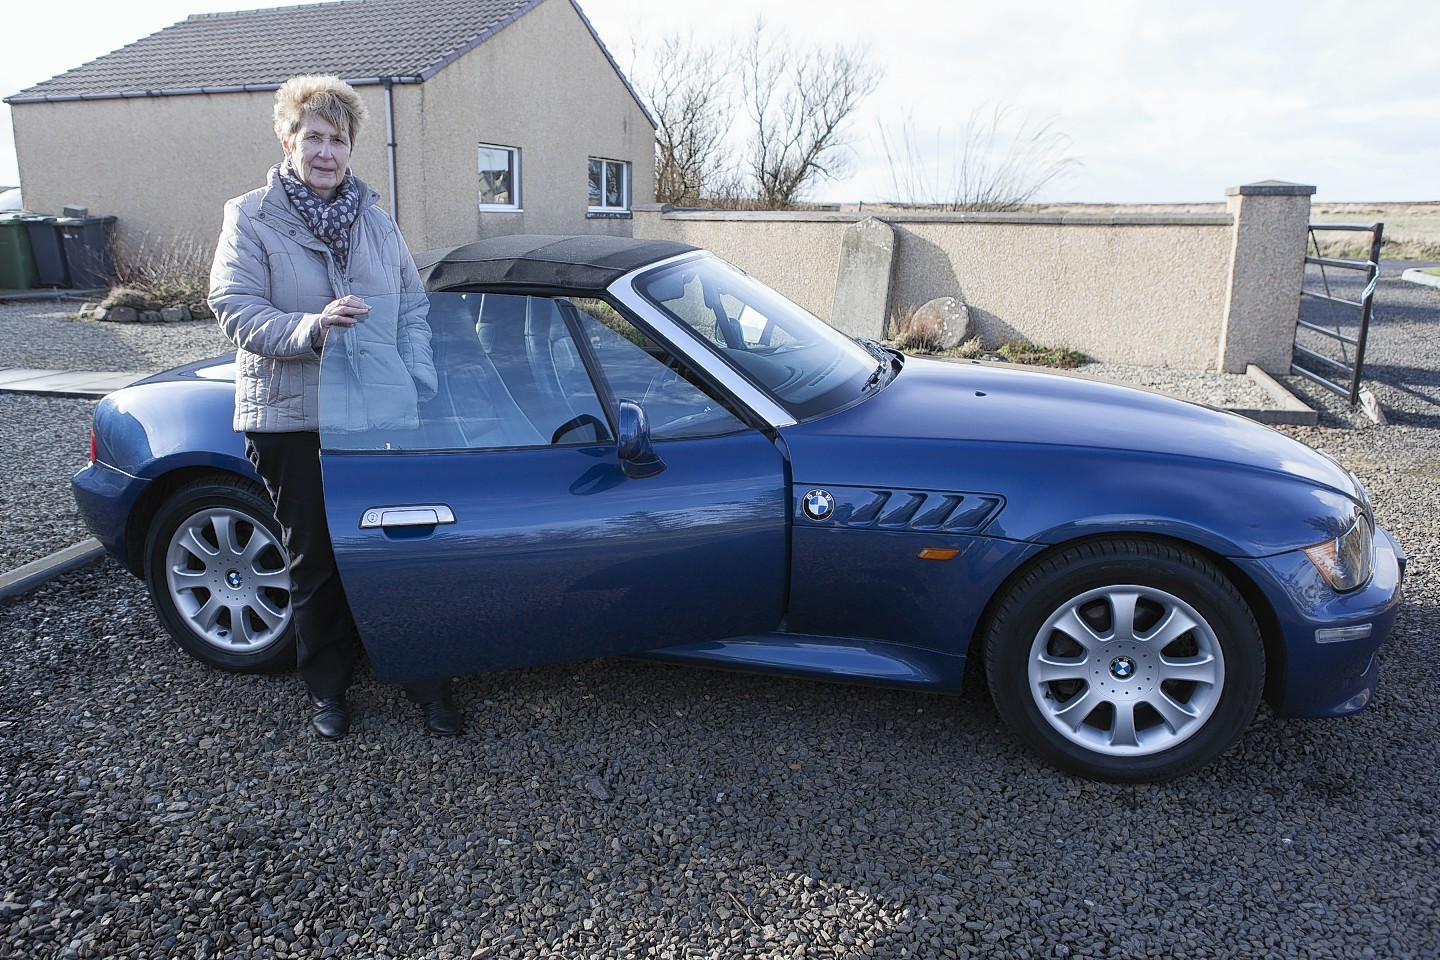 Ethel Green with her 1999 BMW Z3 Convertible